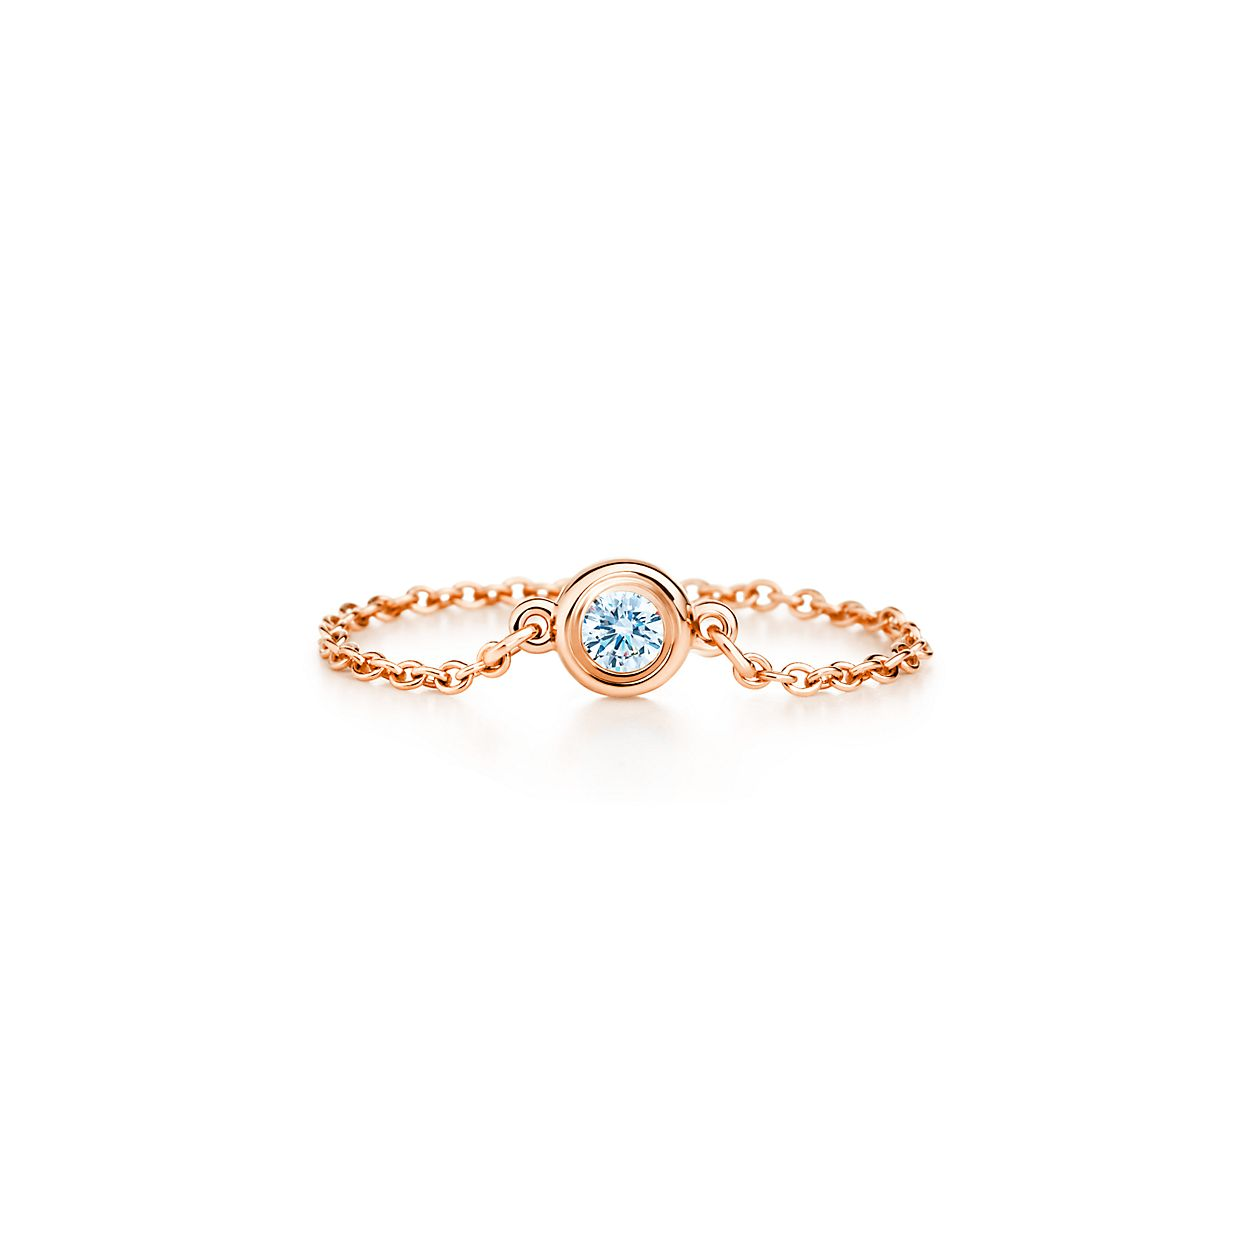 rose Co Peretti amp by in Diamonds gold Elsa Yard 4 xmyM7Qqf65 Size ring 18k the 864Twq